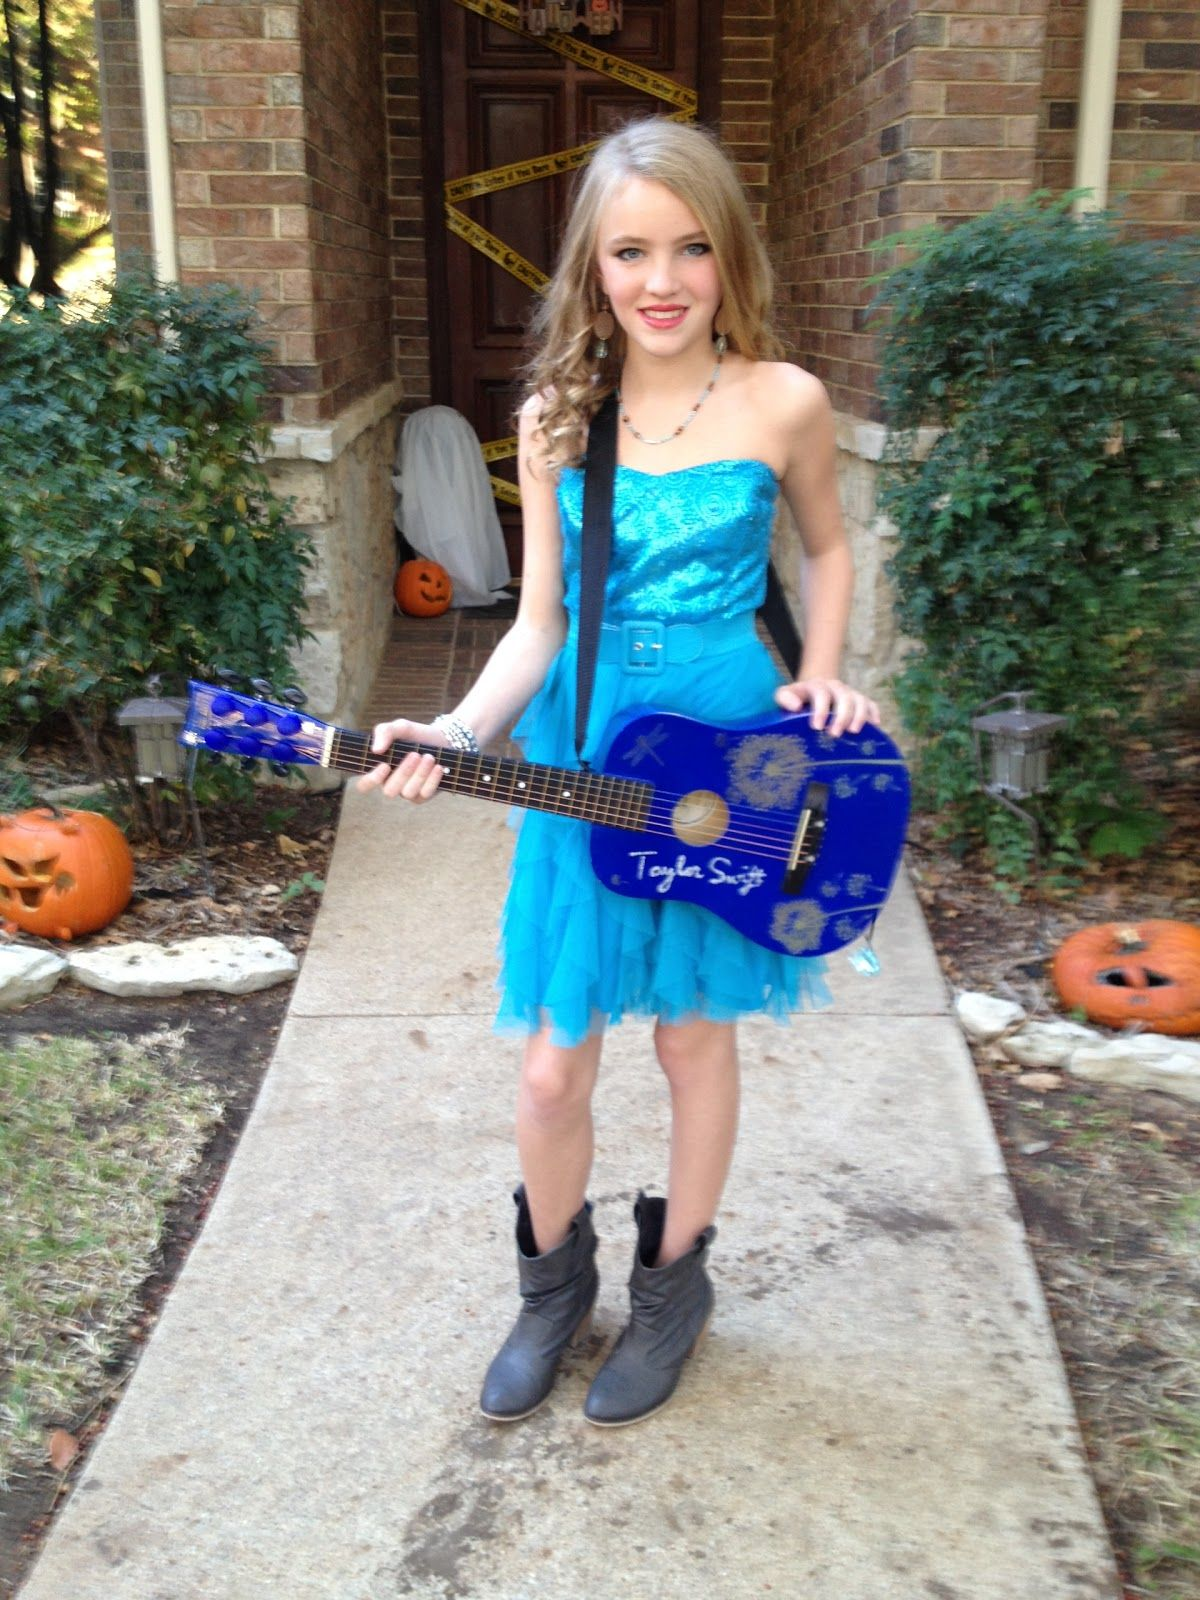 Taylor Swift early Halloween picture :) she went as a tele tubby ...